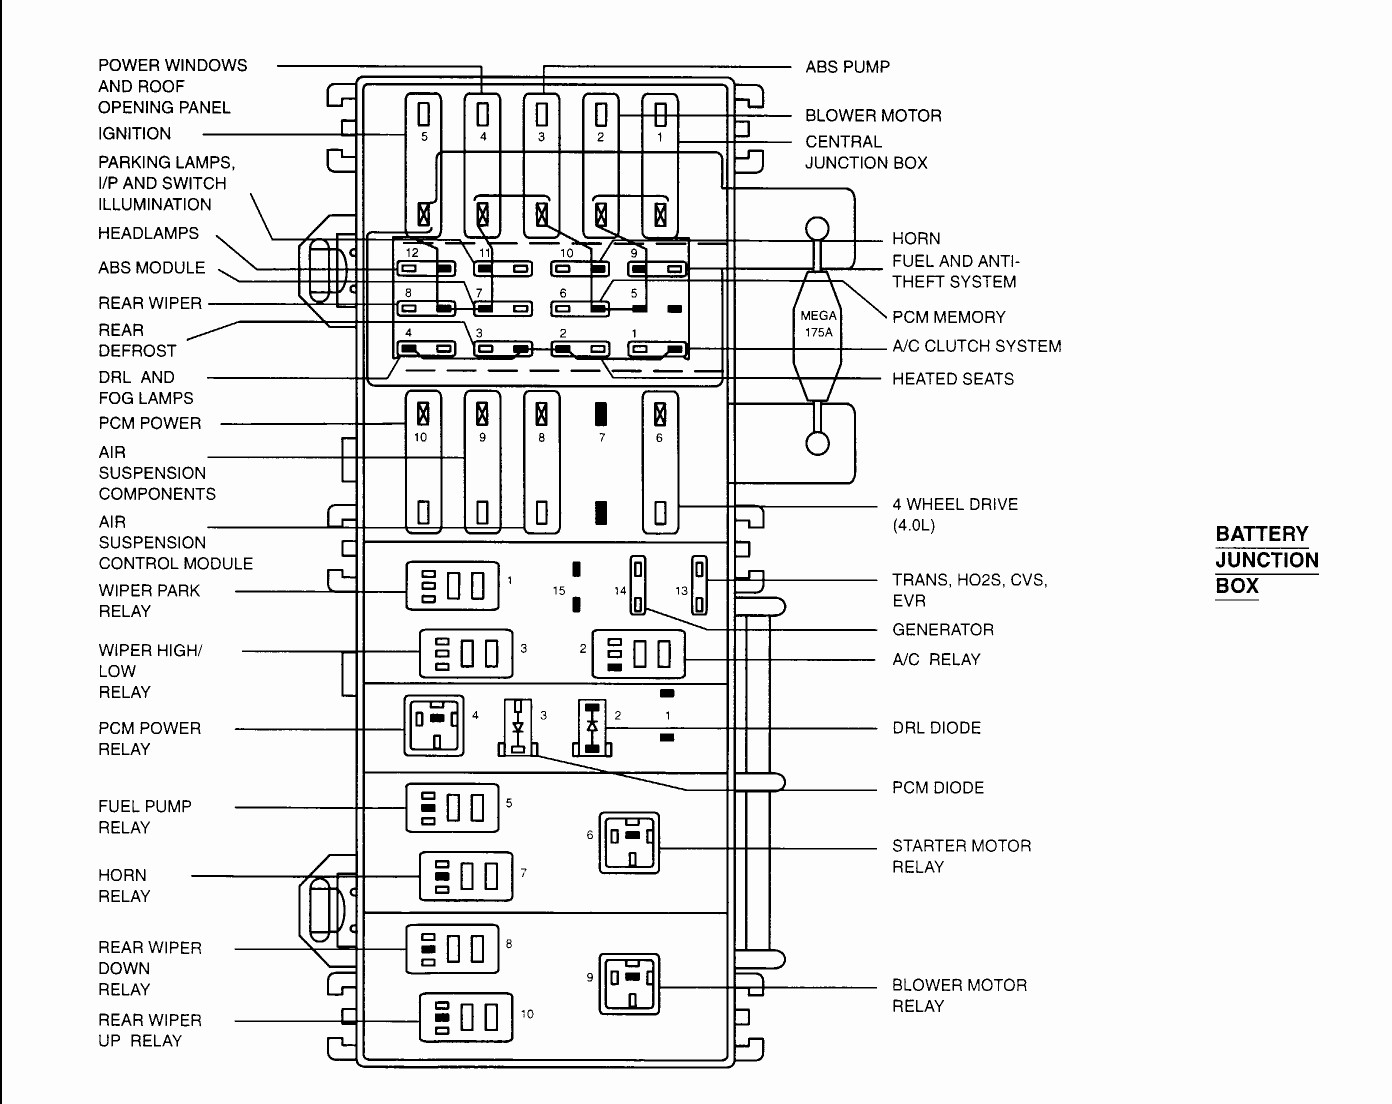 Surprising Ford Fuel Pump Relay Wiring Diagram Gallery